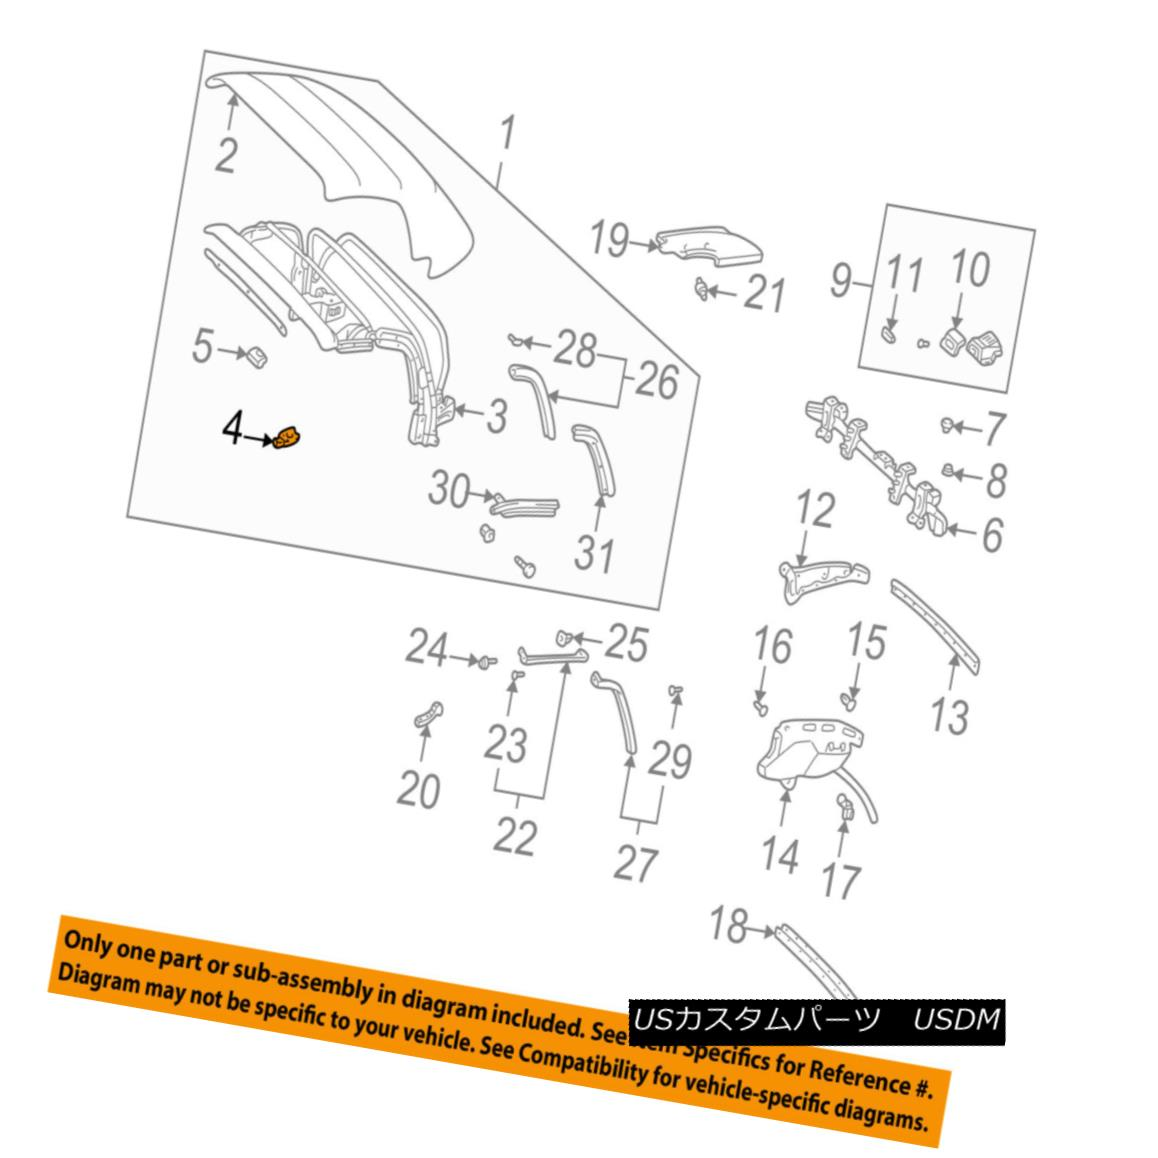 幌・ソフトトップ TOYOTA OEM 00-05 MR2 Spyder Convertible/soft Top-Lock Right 6933017010 TOYOTA OEM 00-05 MR2 Spyder Convertible / so ftトップロック6933017010